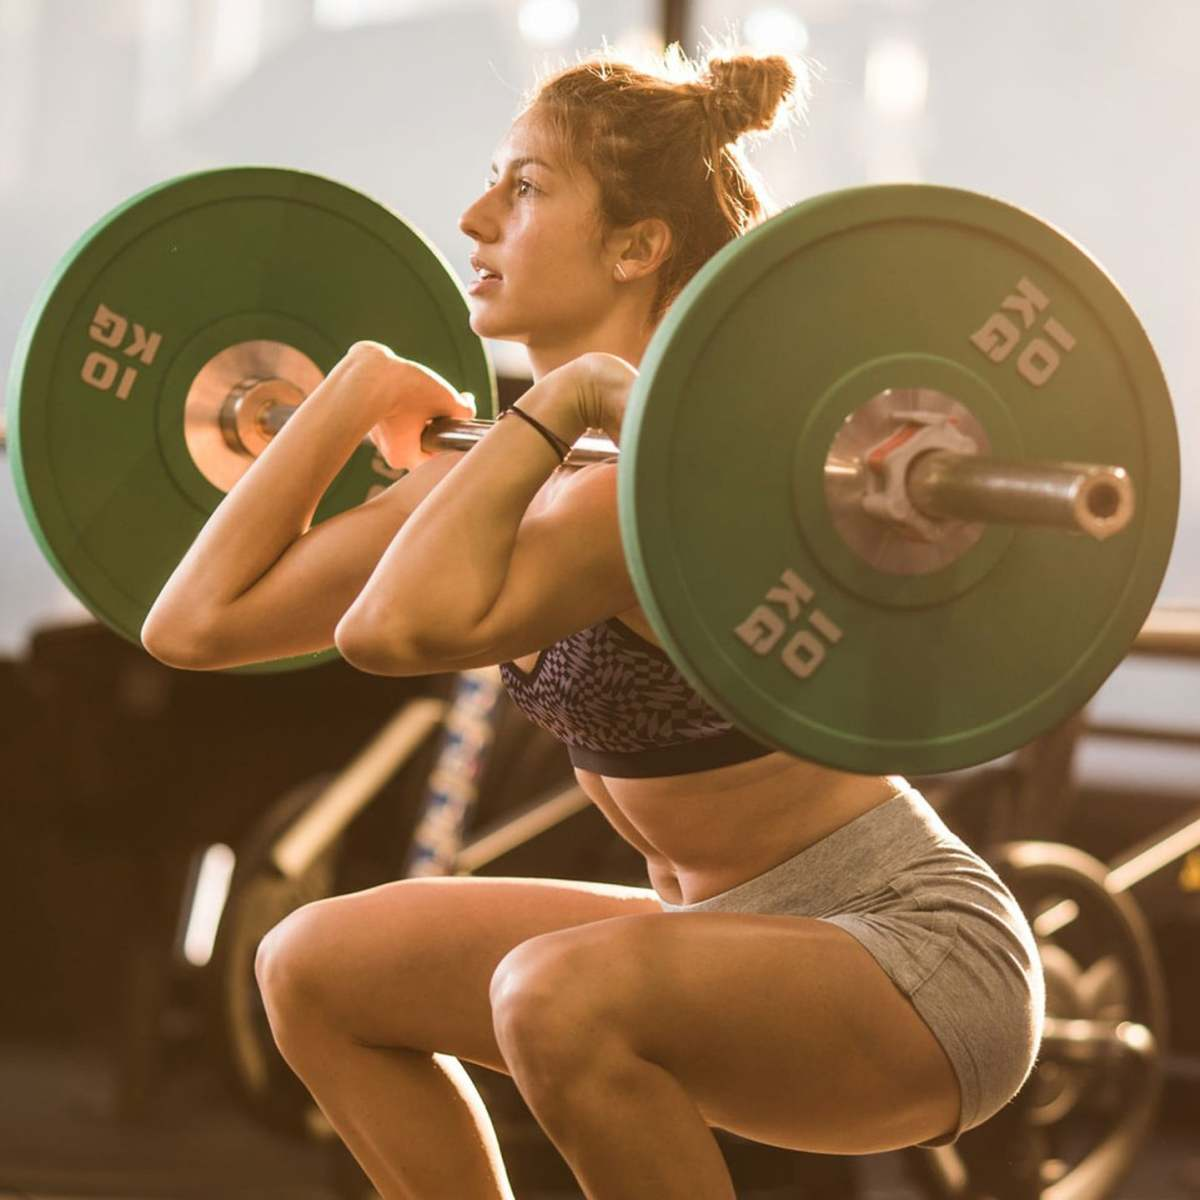 Incorporating strength lifting equipment can increase gains.